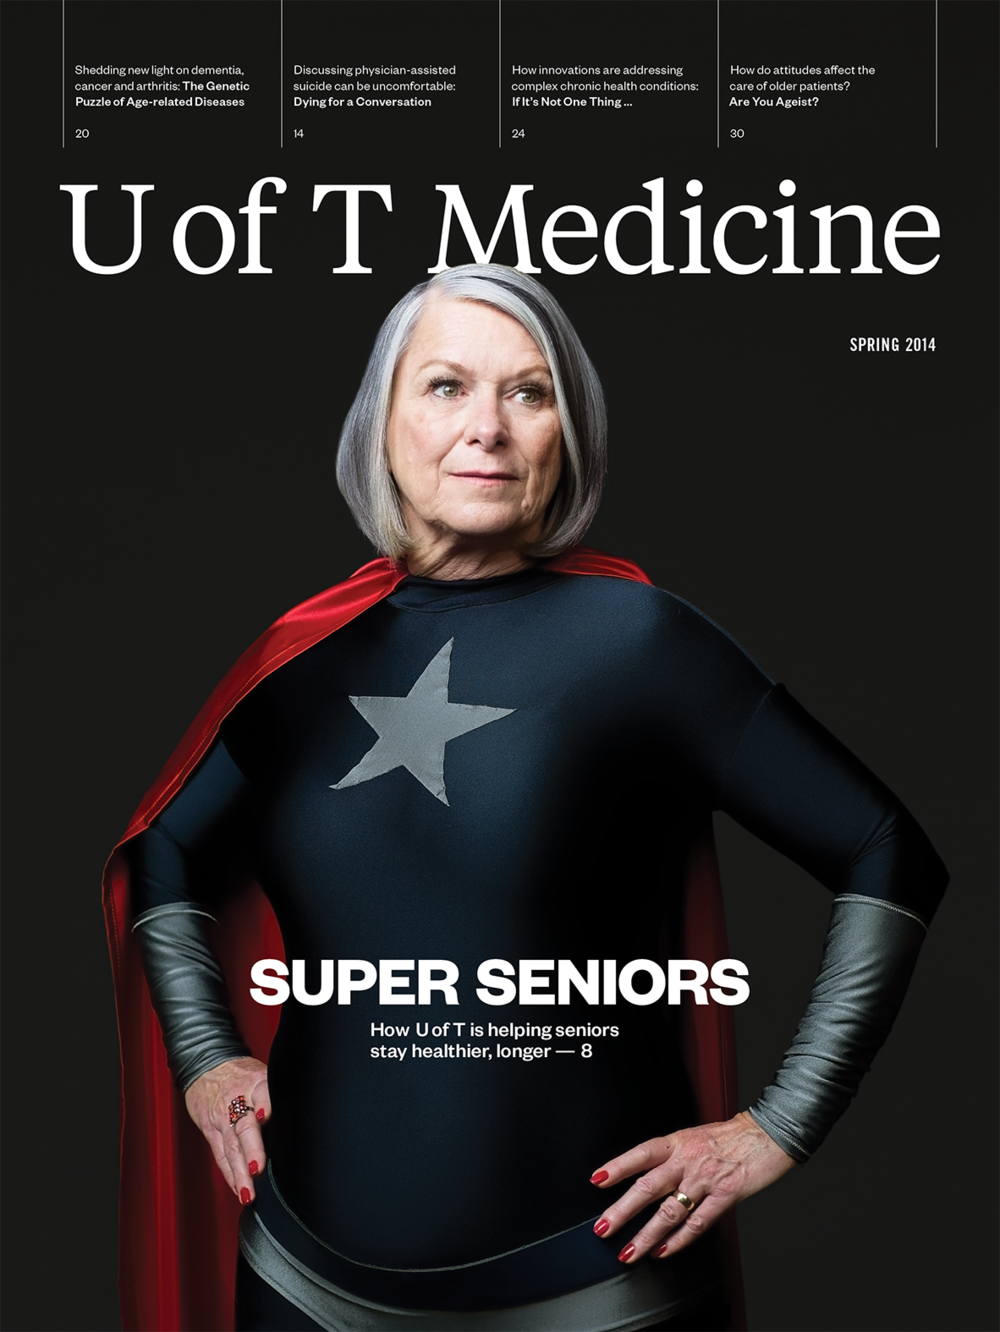 UTMed_Mag_Cover_Super_Seniors.png